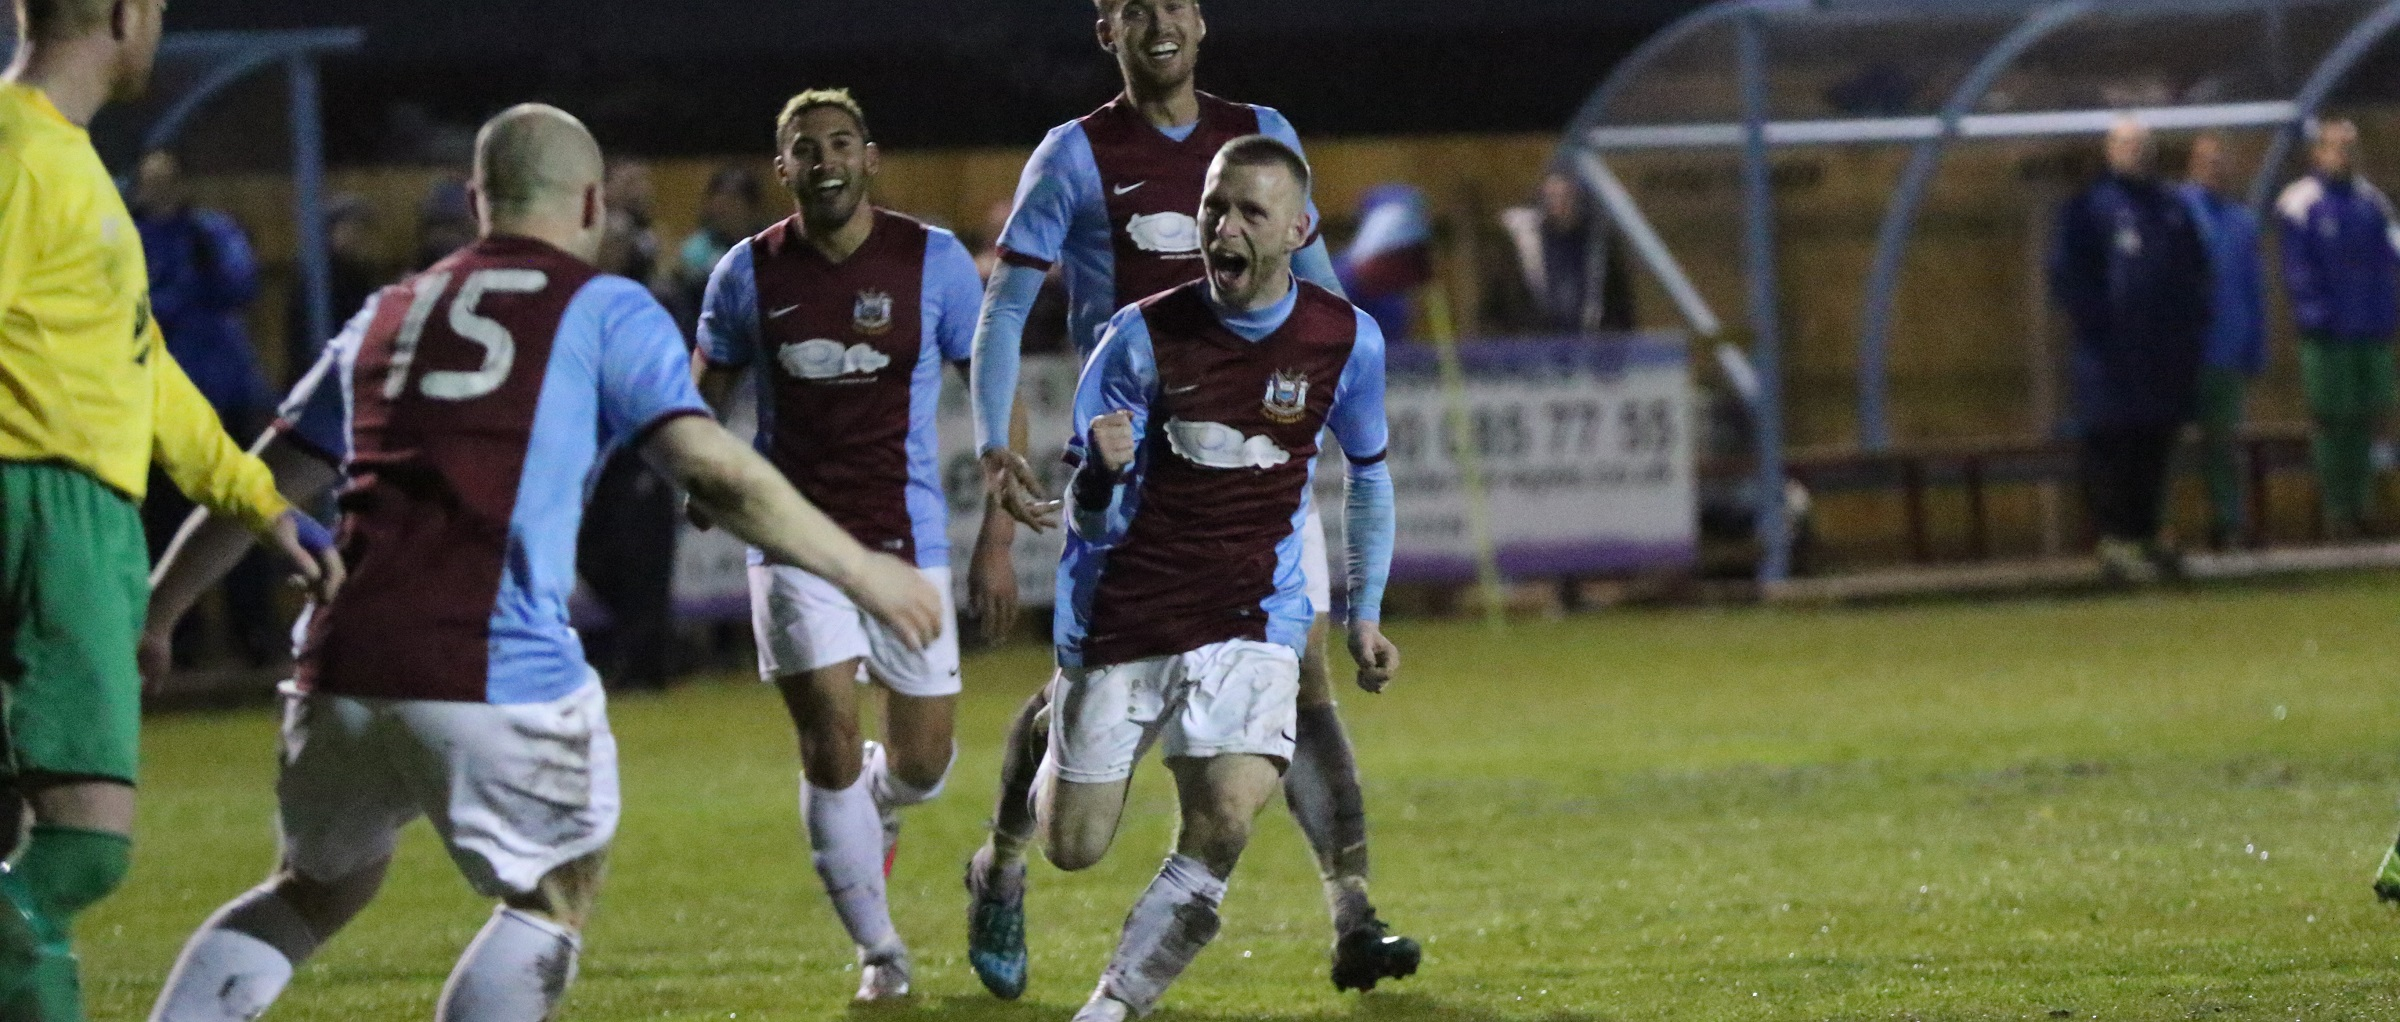 VIDEO: Barrie Smith 'chuffed' after stunning goal before lifting league trophy